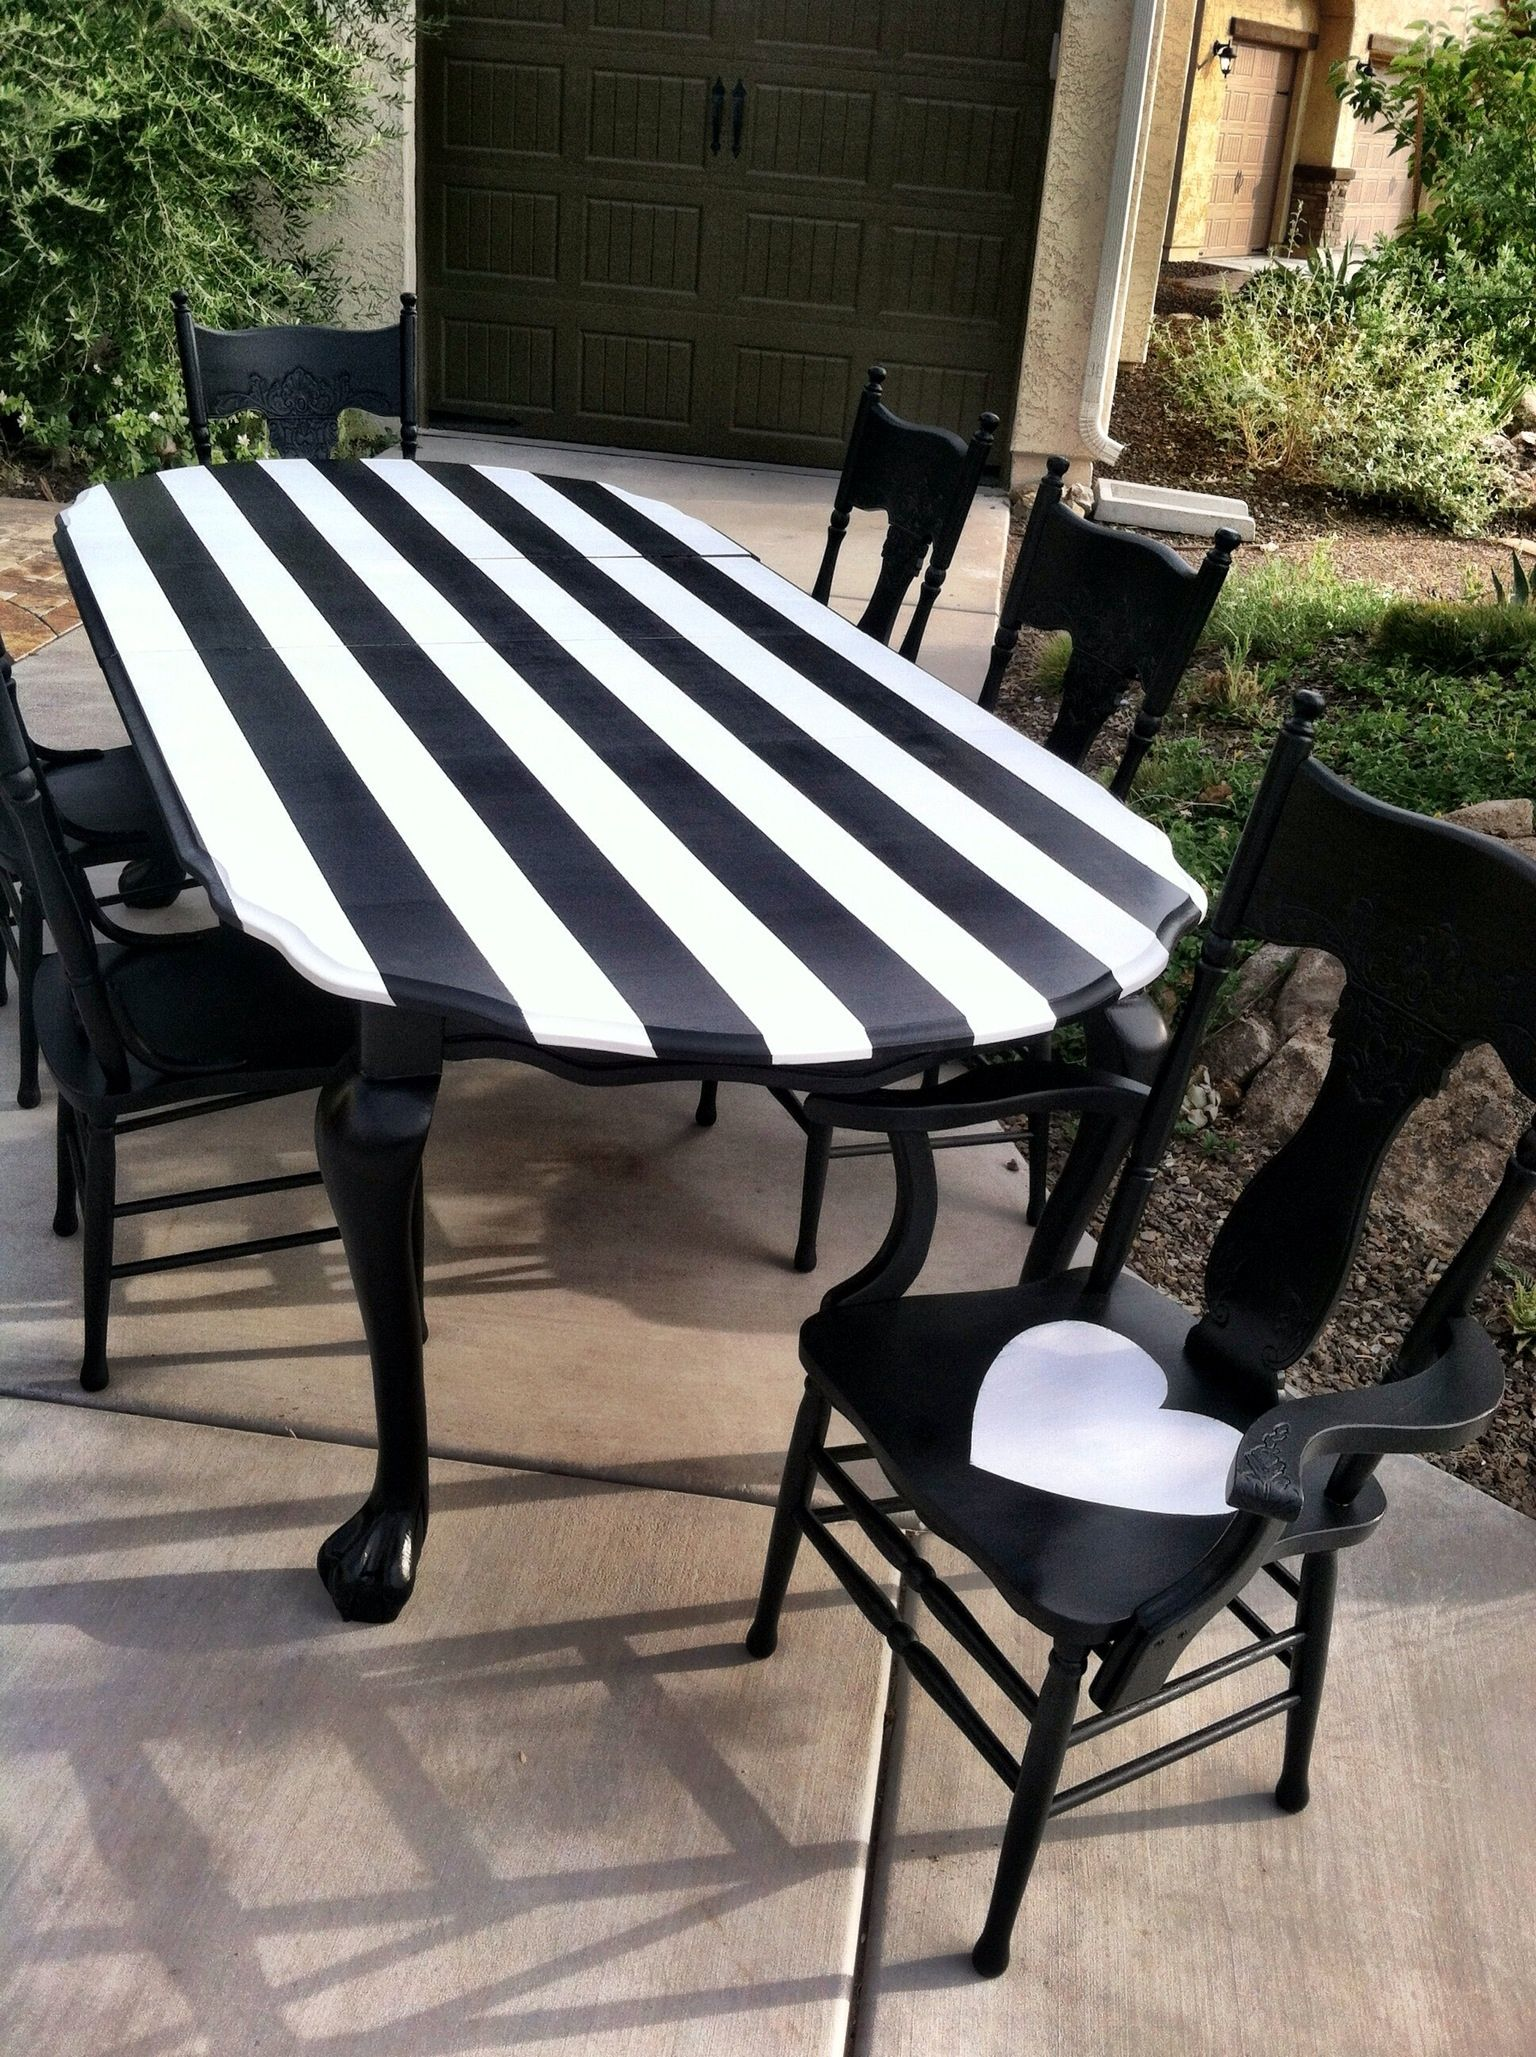 Amazing Black And White Striped Dining Table Completed By Olivewood  Designs....follow